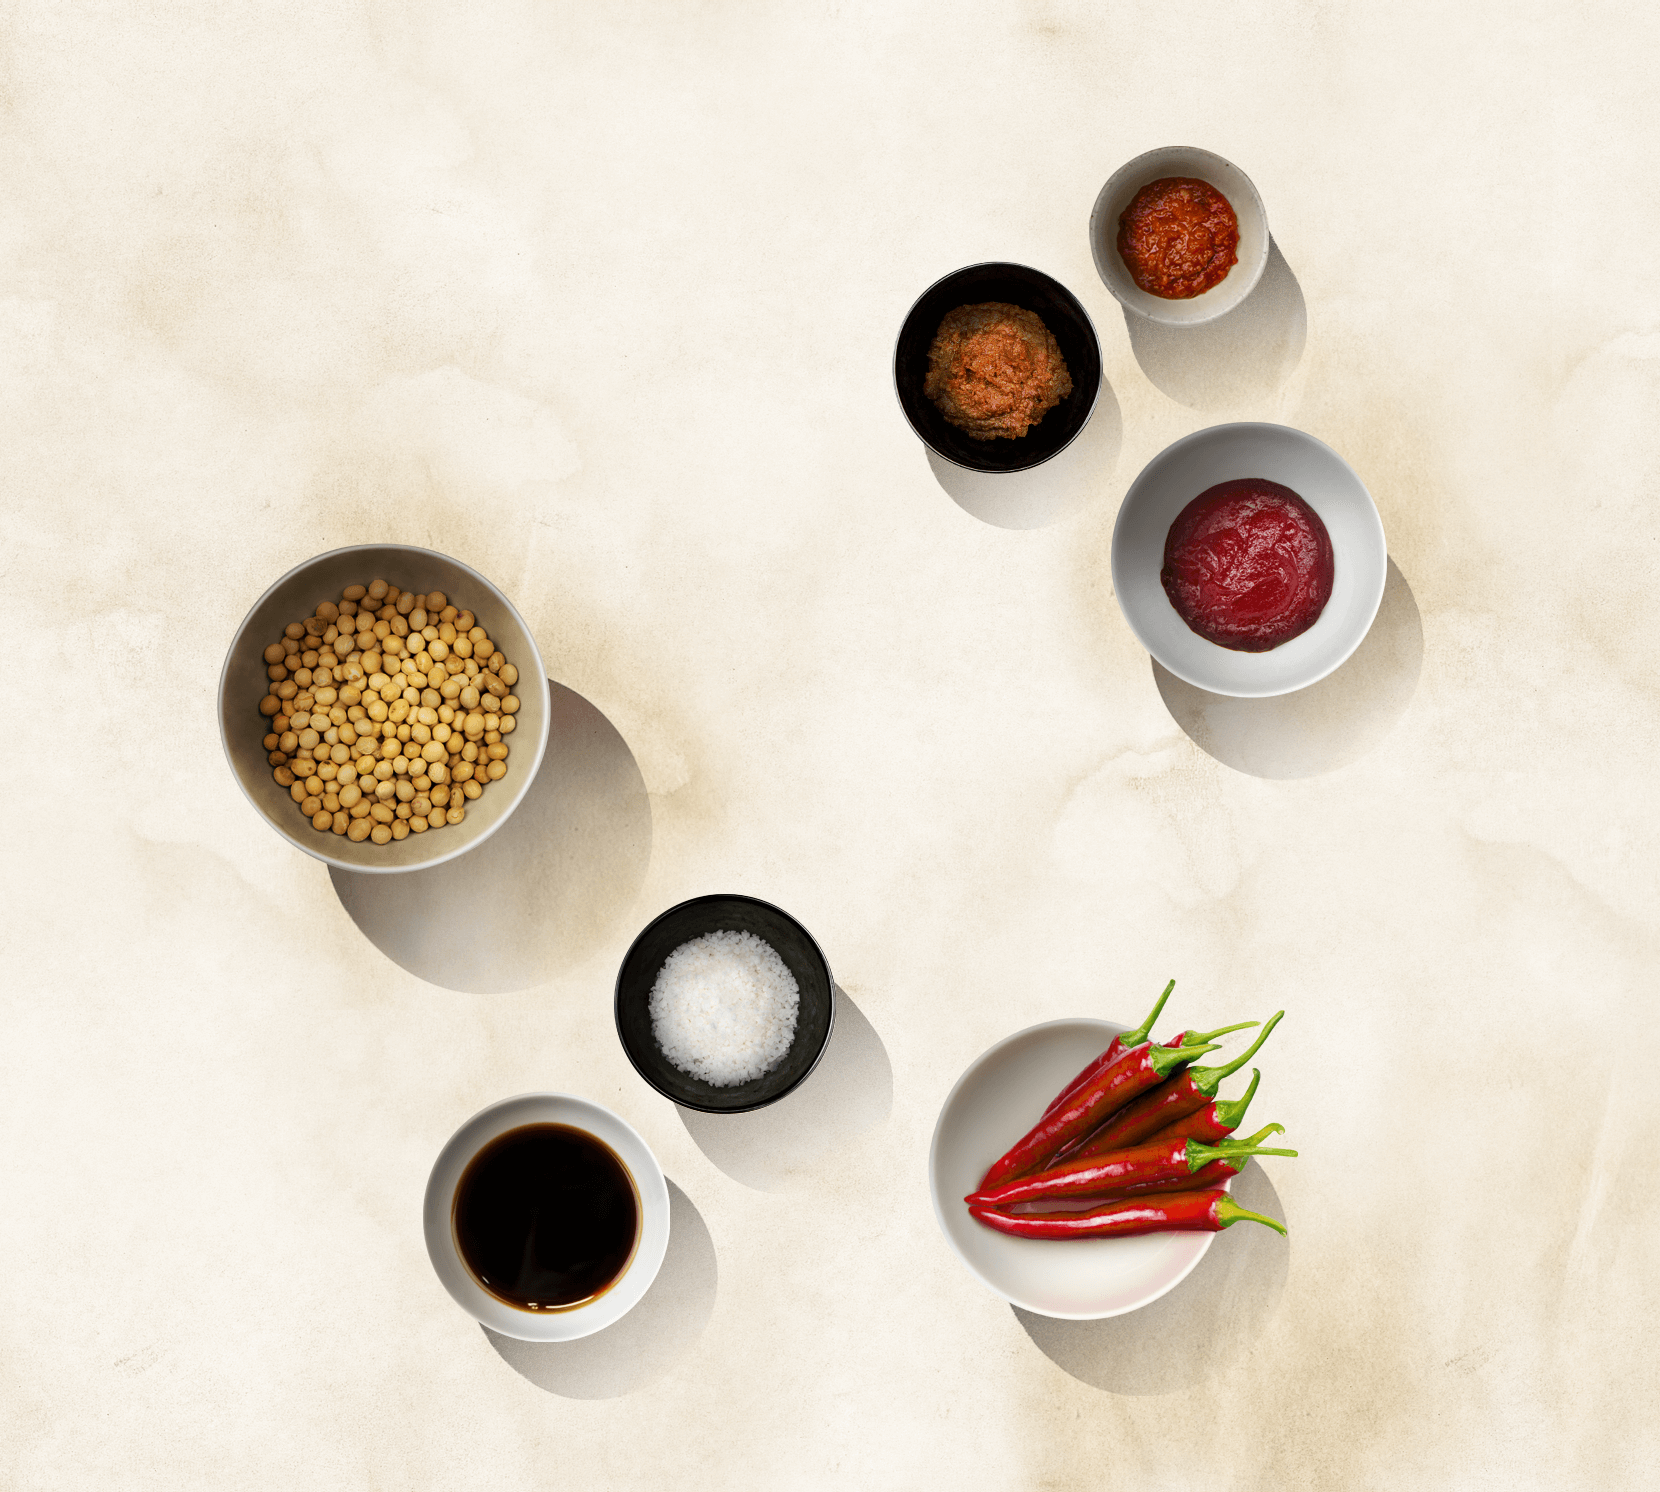 More tasty with the fermentation technology by going with the time for quality ingredient